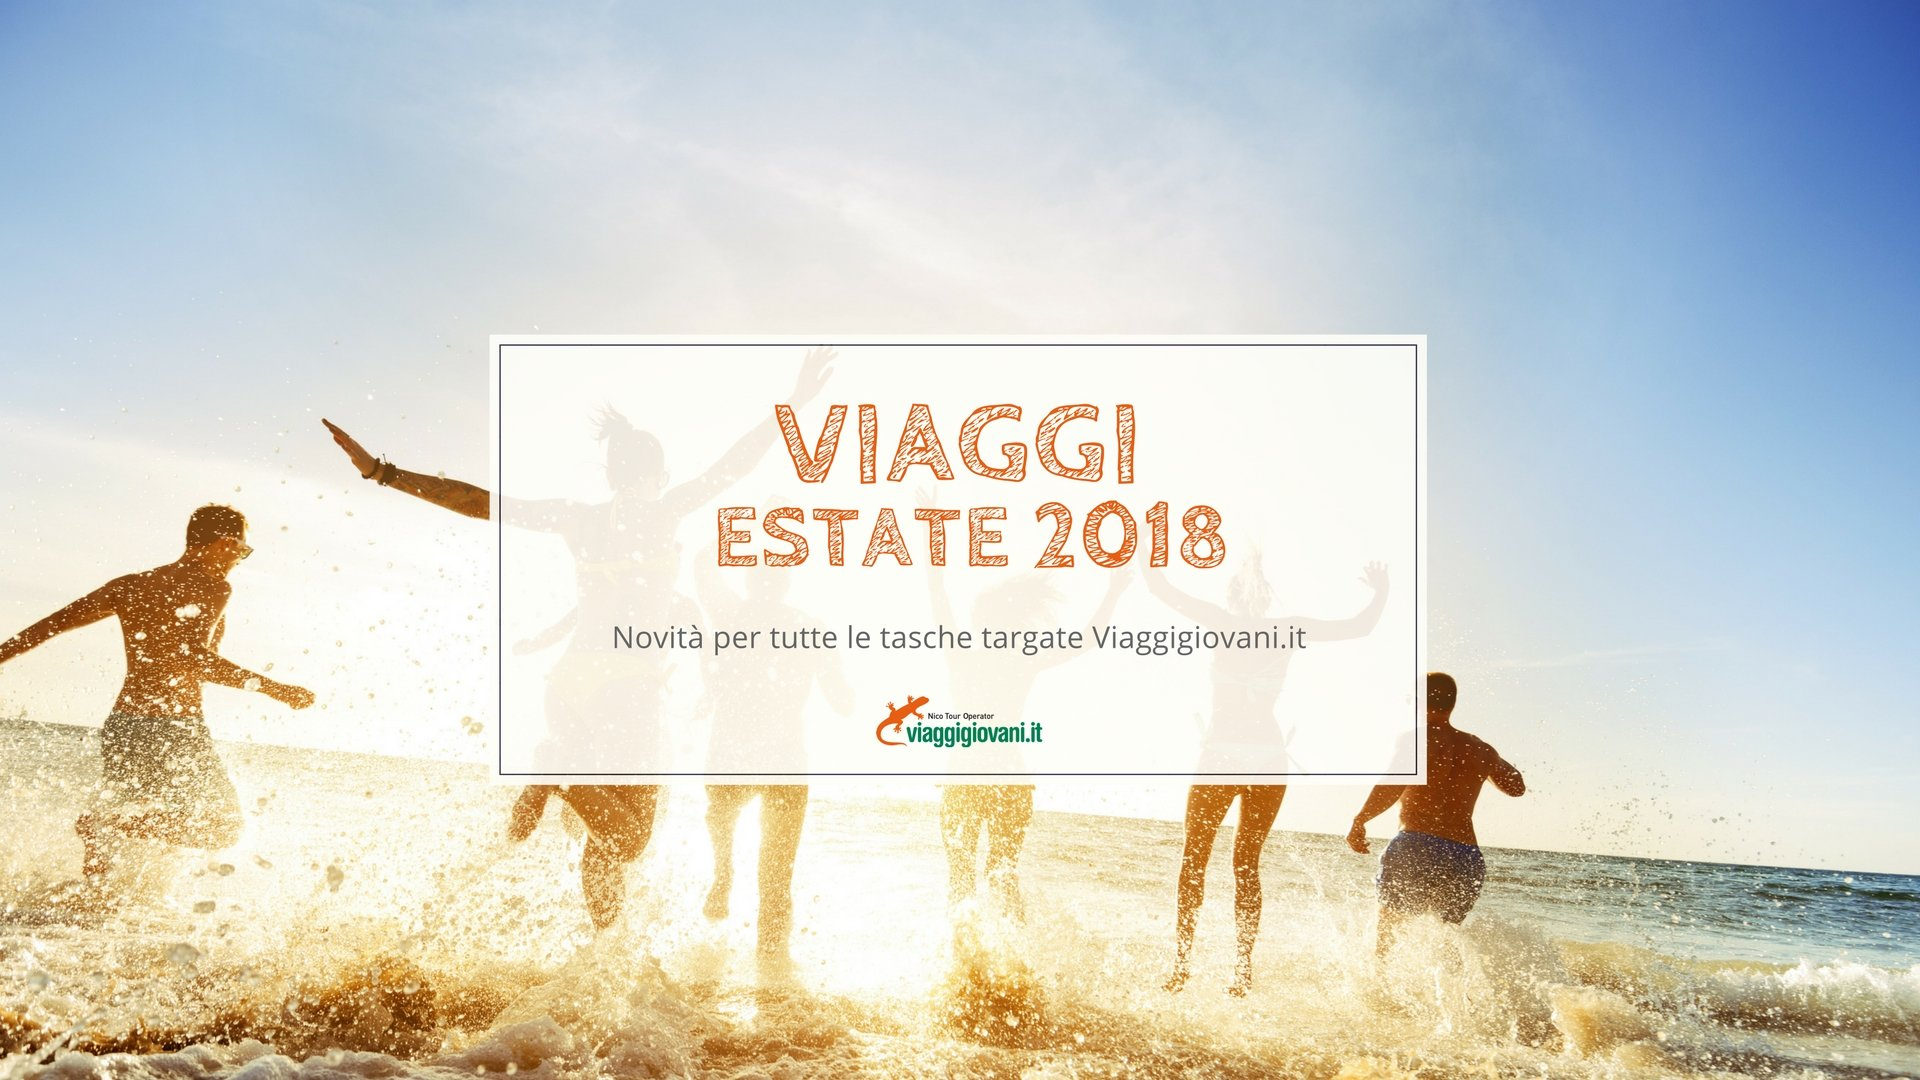 Viaggi Estate 2018, le novita' di Viaggigiovani.it